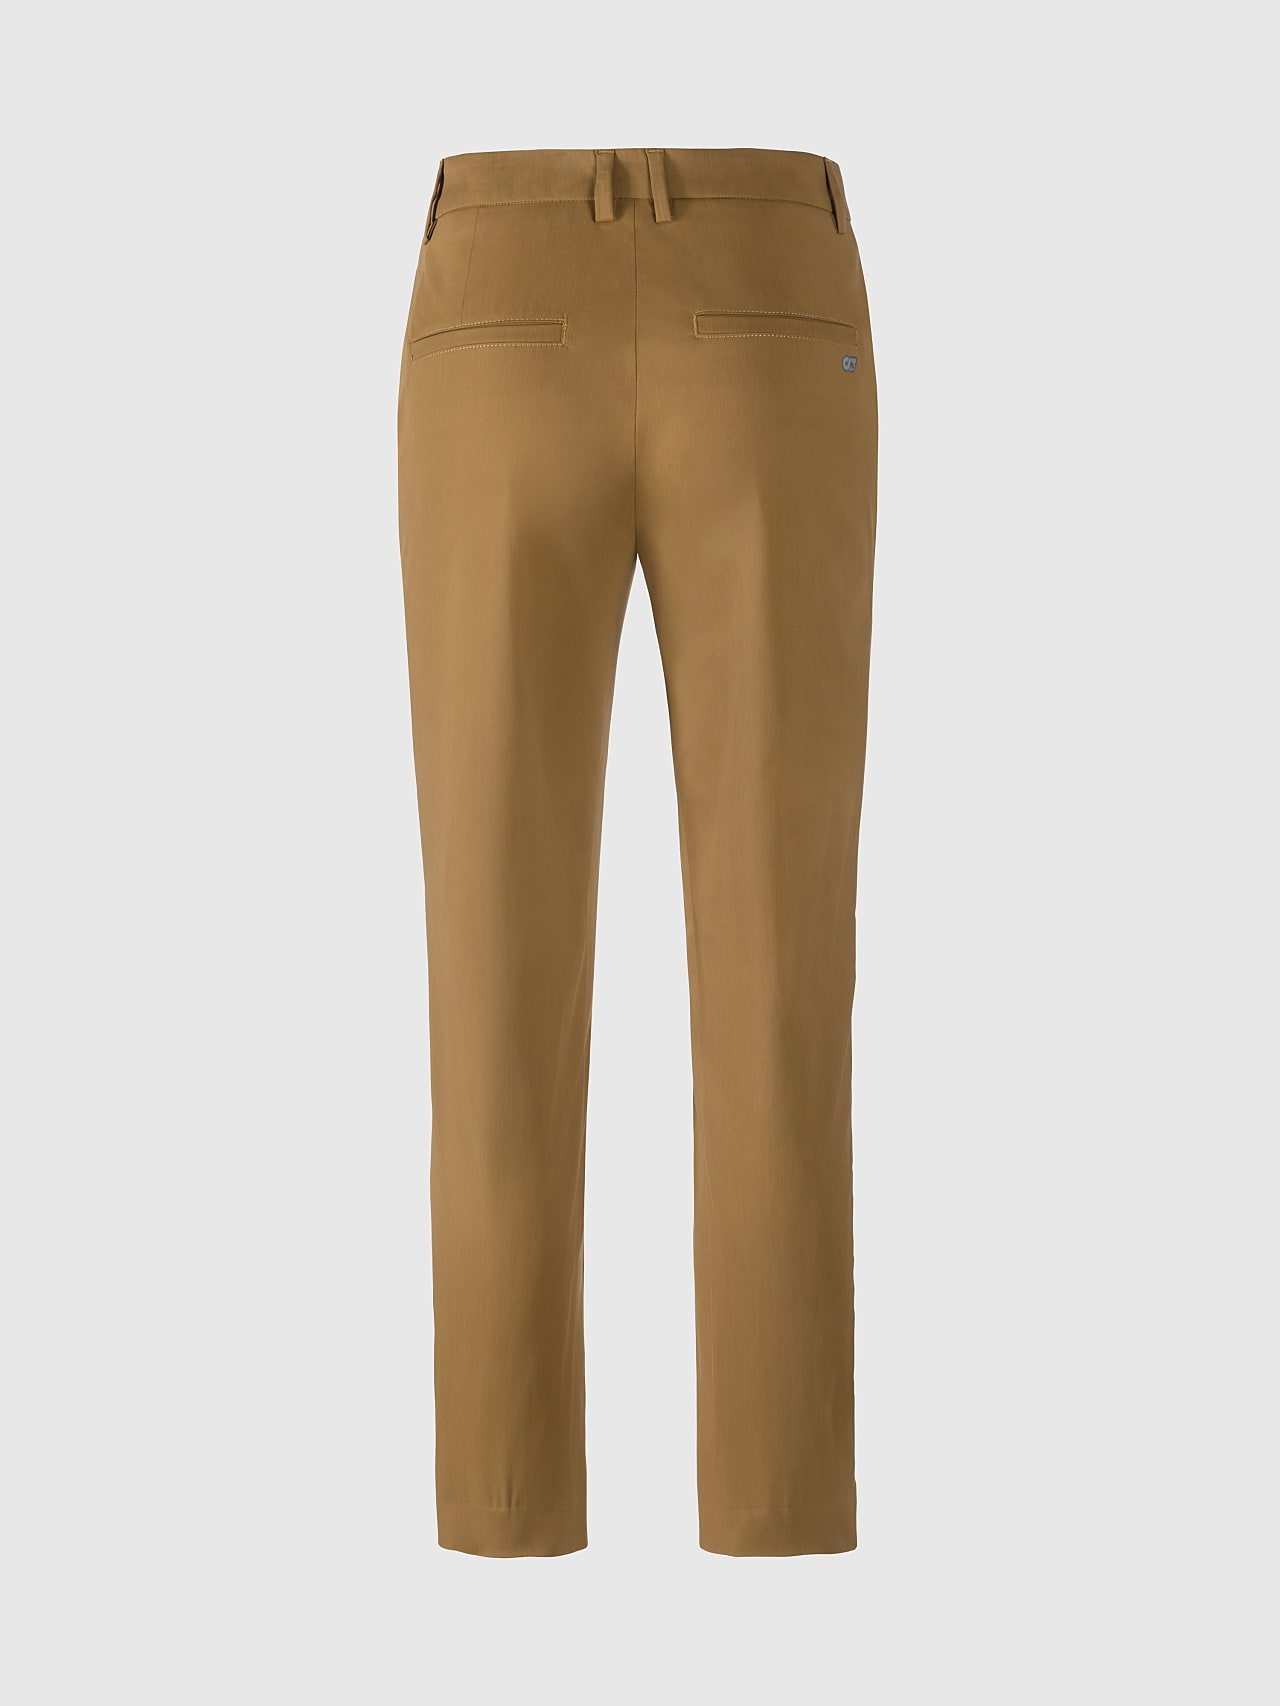 PEPPI V1.Y5.01 Water-Repellent Cotton-Twill Chino brown Left Alpha Tauri